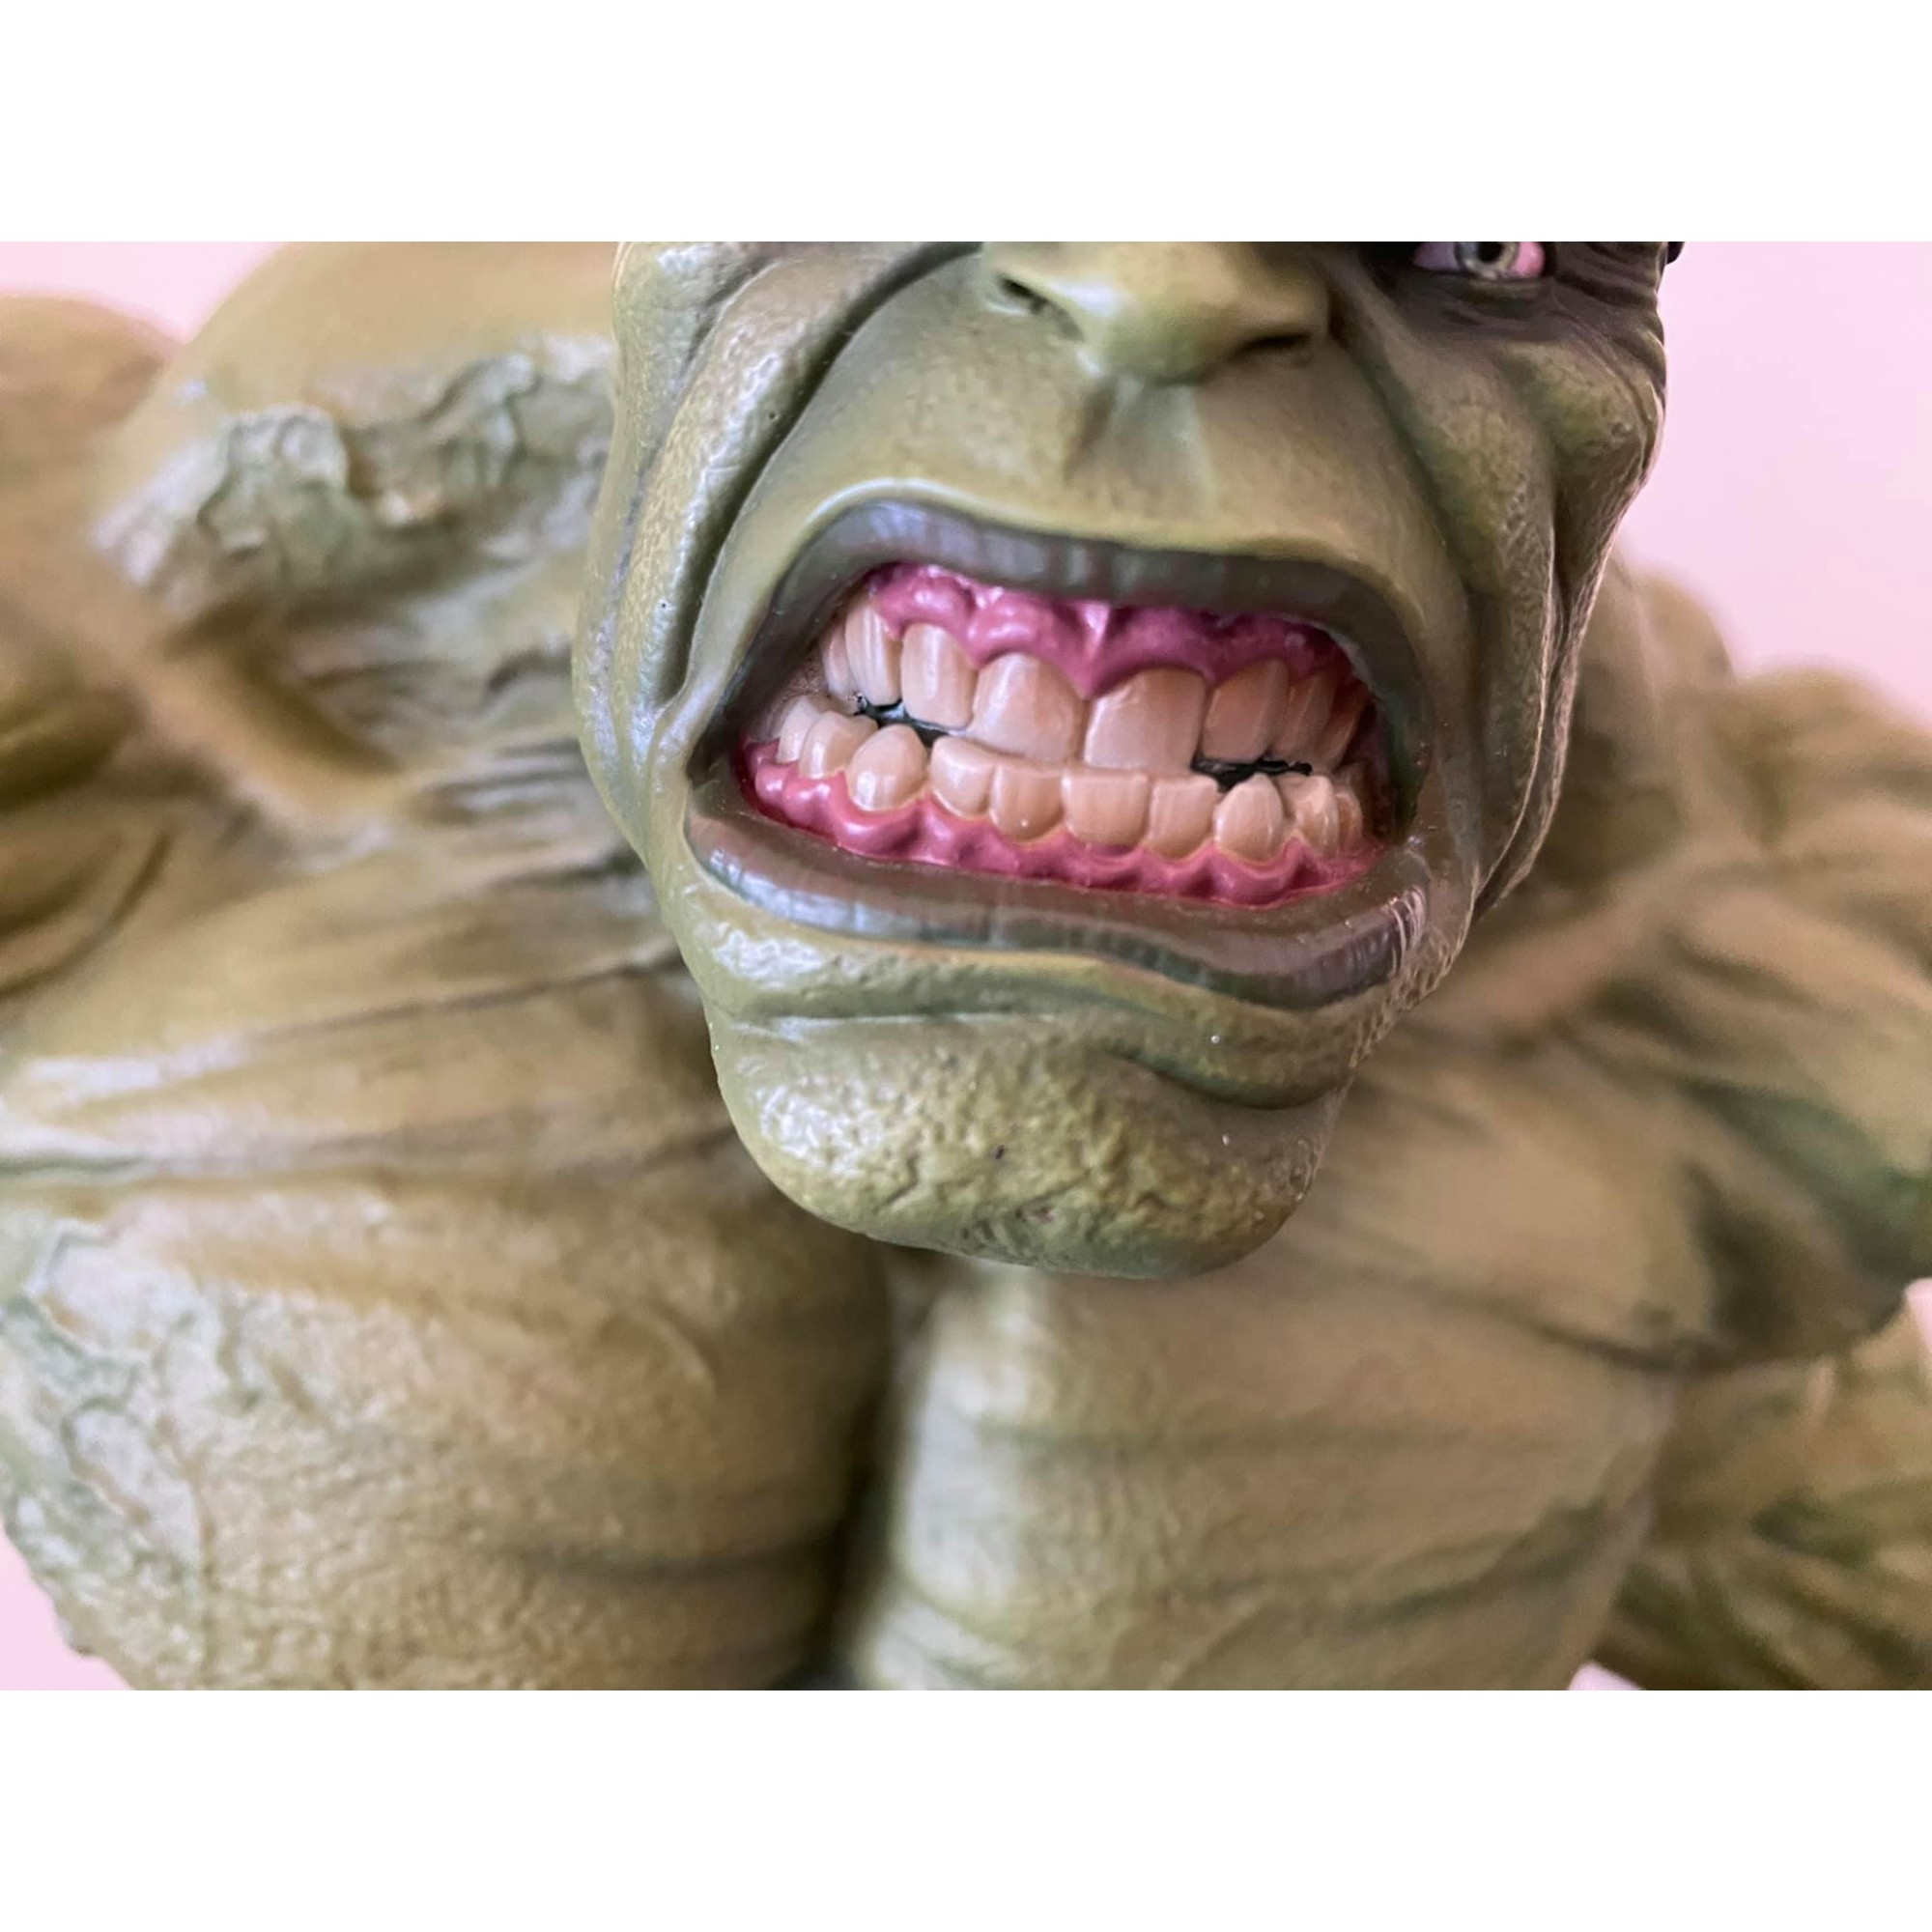 NMK Hulk 1/4 statue  - Movie Freaks Collectibles